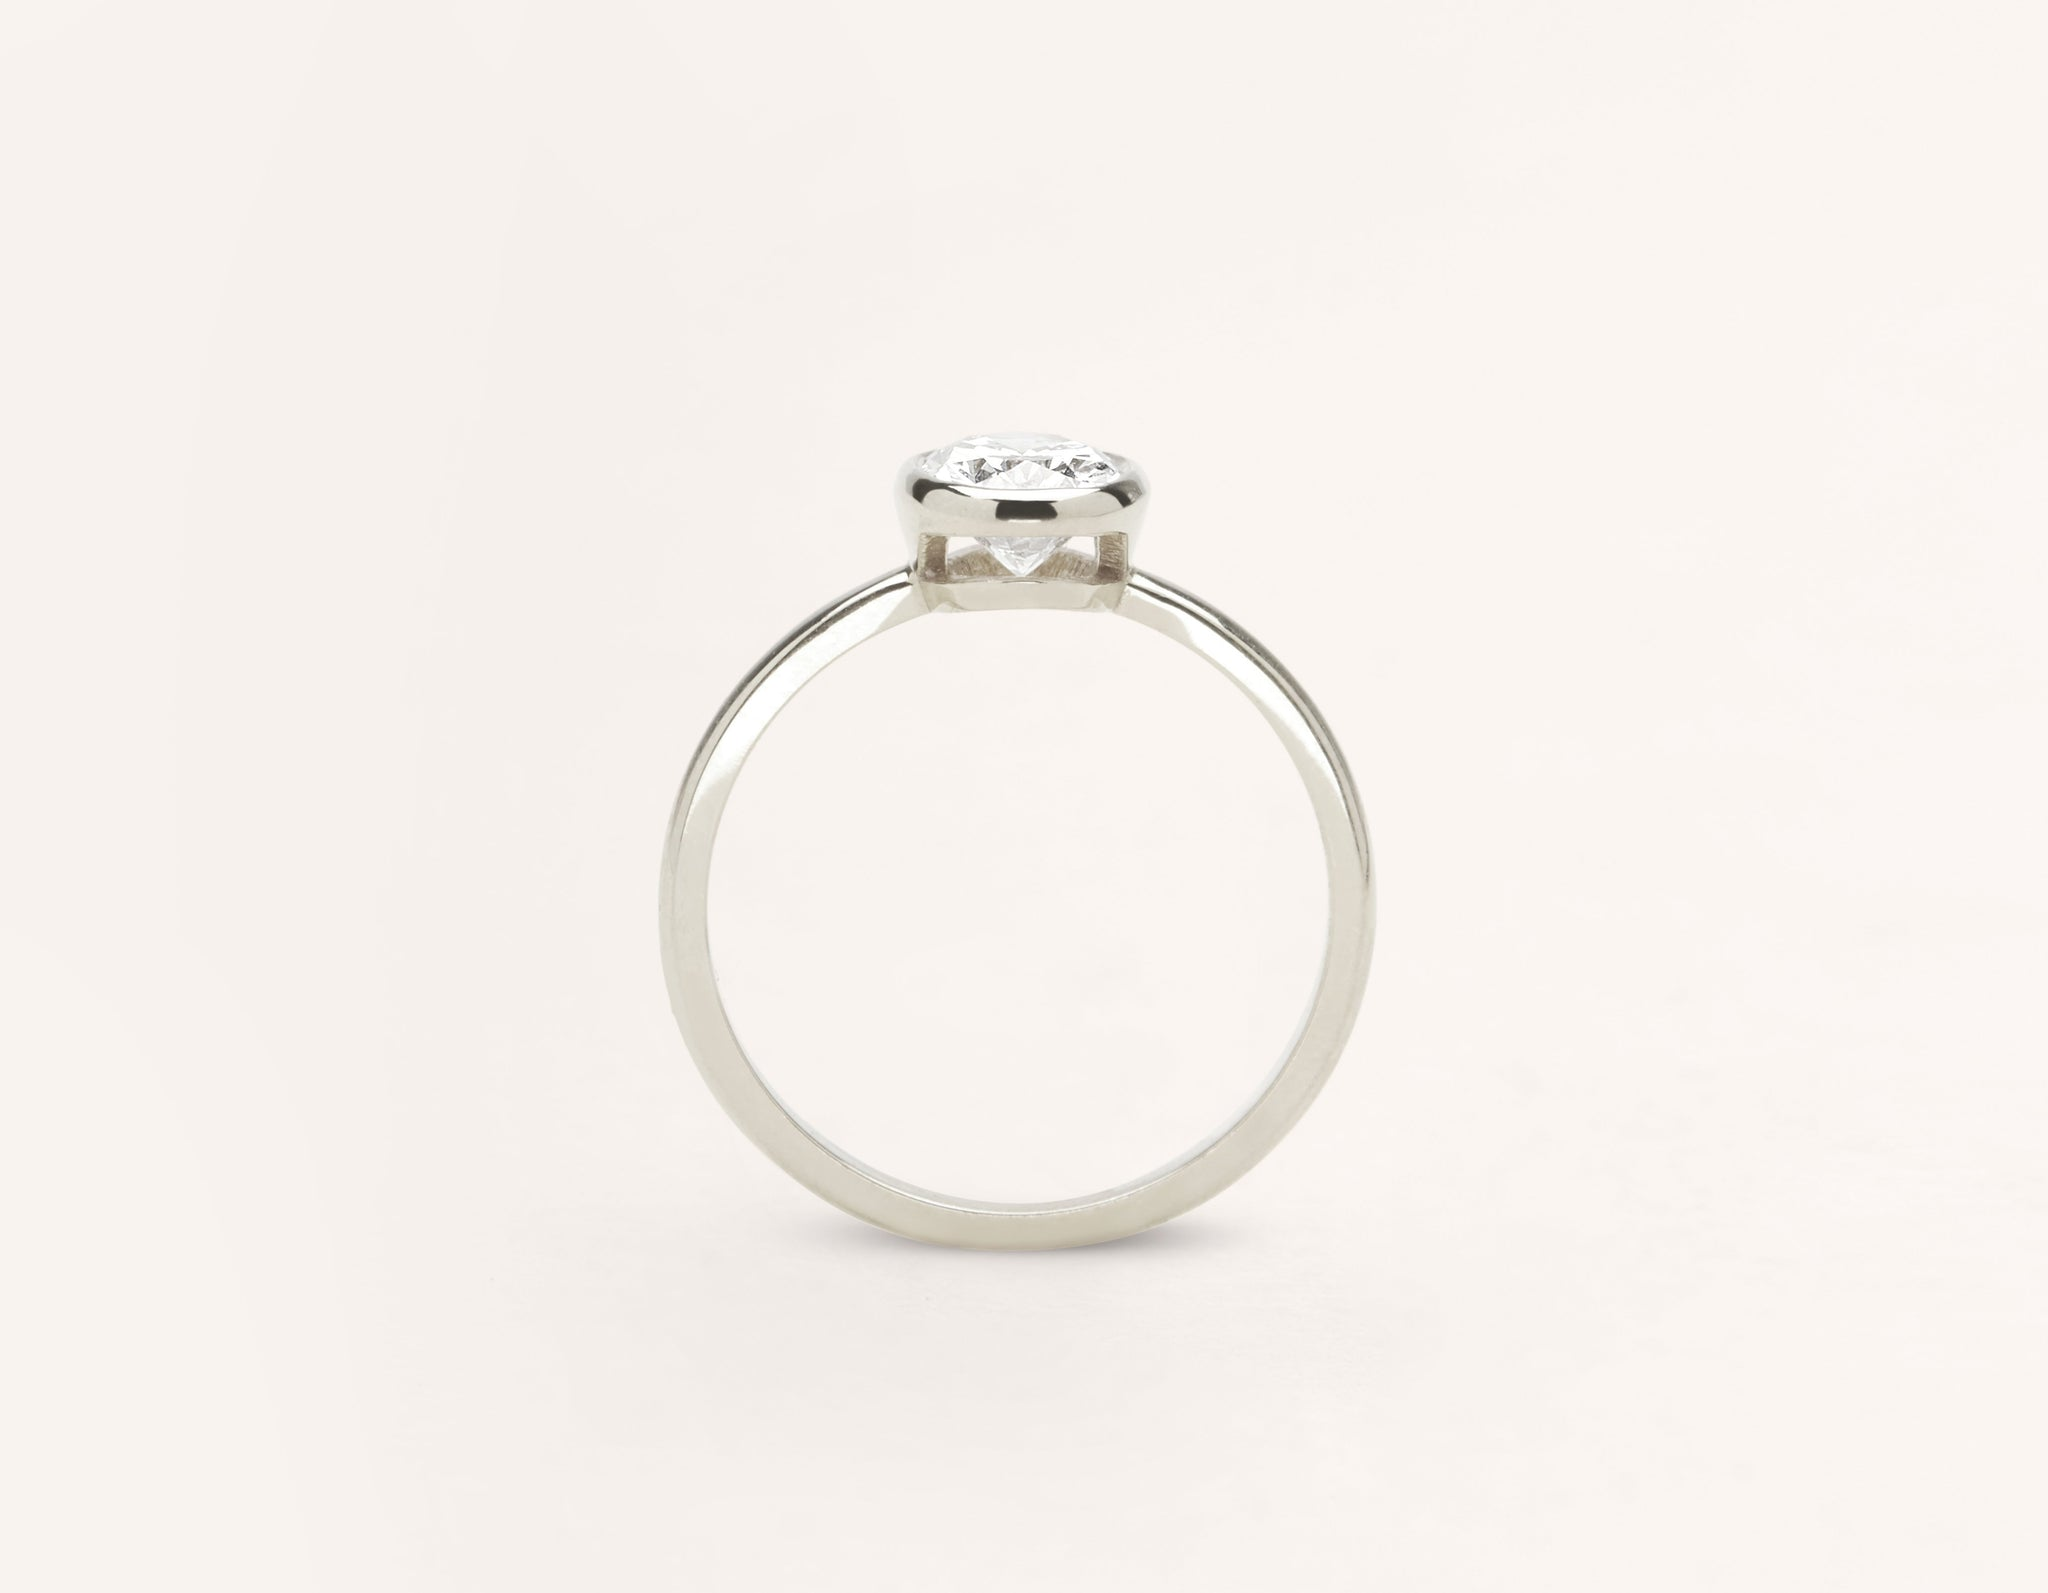 Vrai and Oro modern classic Oval Bezel diamond engagement ring 18k solid white gold sustainable jewelry